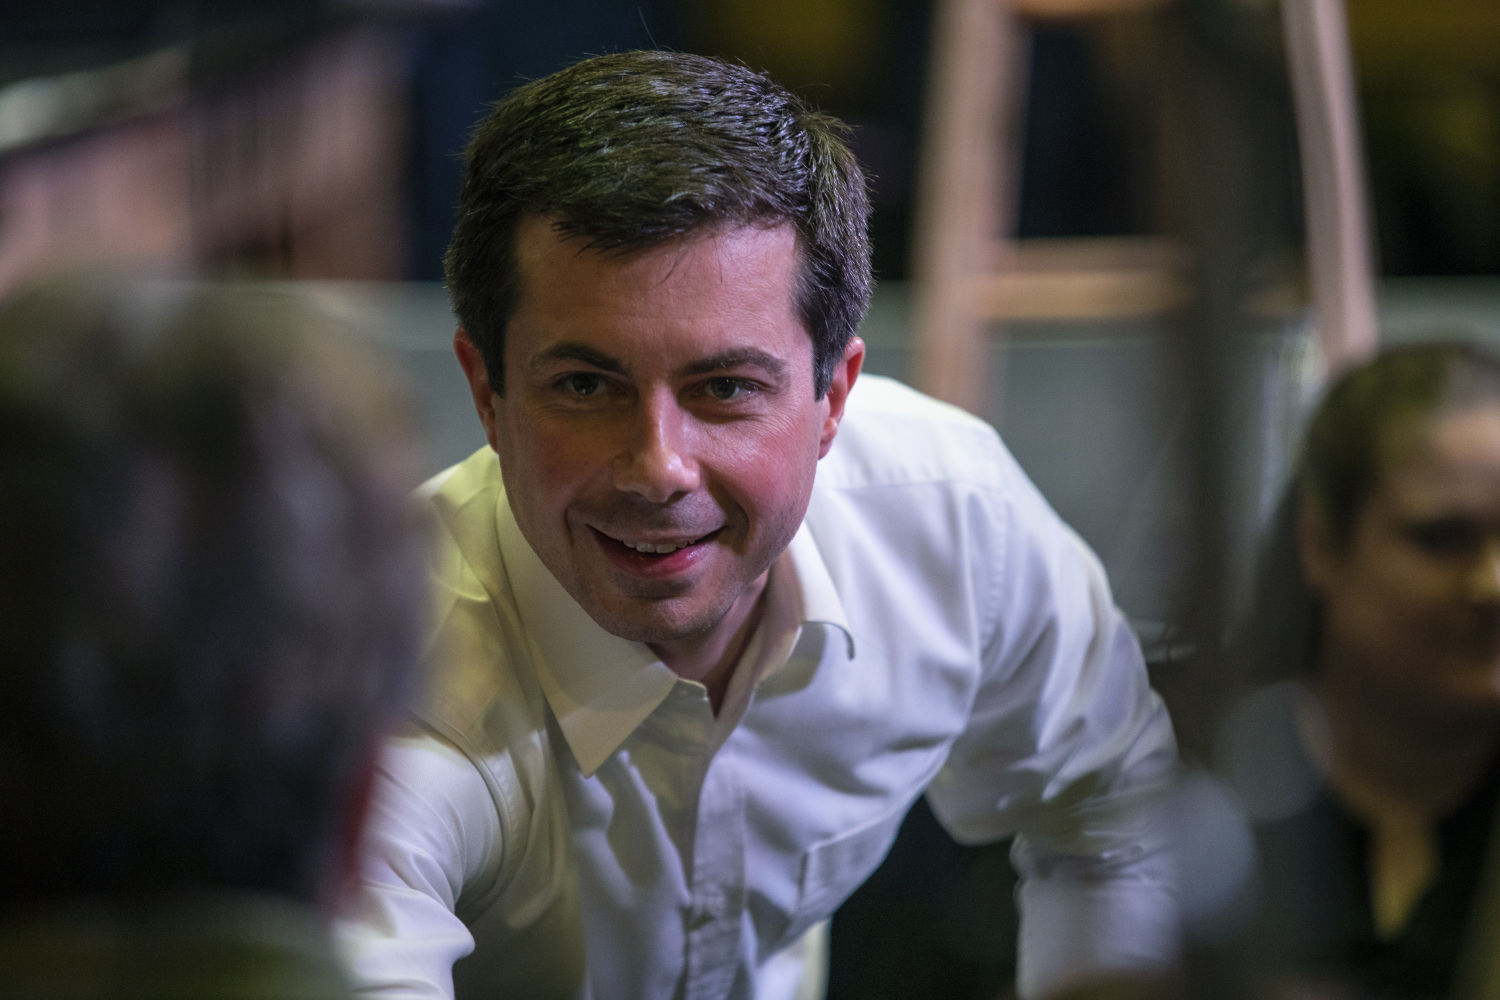 2020+Democratic+presidential-nomination+candidate+Pete+Buttigieg+shakes+hands+with+attendees+after+the+town+hall+at+the+Wildwood+Smokehouse+%26+Saloon+on+May+18%2C+2019.+The+Iowa+City+event+marked+the+third+of+four+Iowa+campaign+stops+for+Buttigieg+this+weekend.